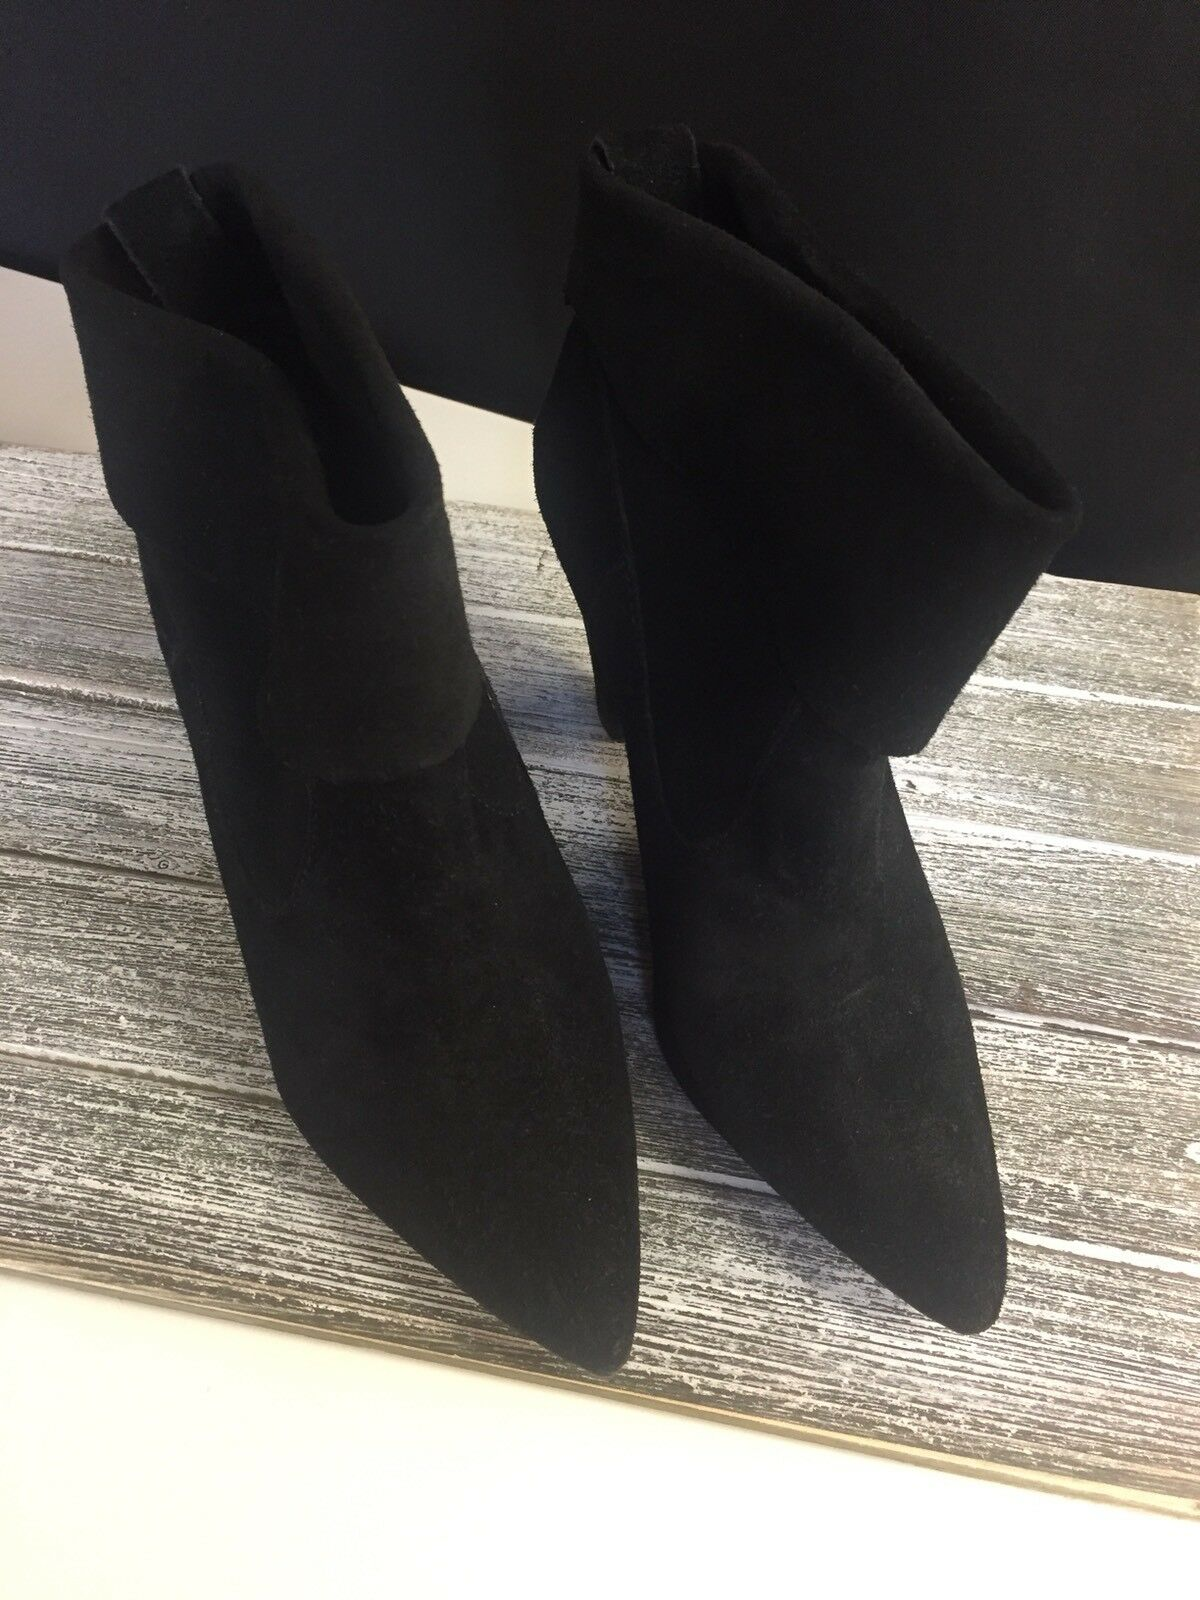 Schutz Black Suede Pointed Toe Heeled Booties Boot shoes Sz 40 Euro   9 US